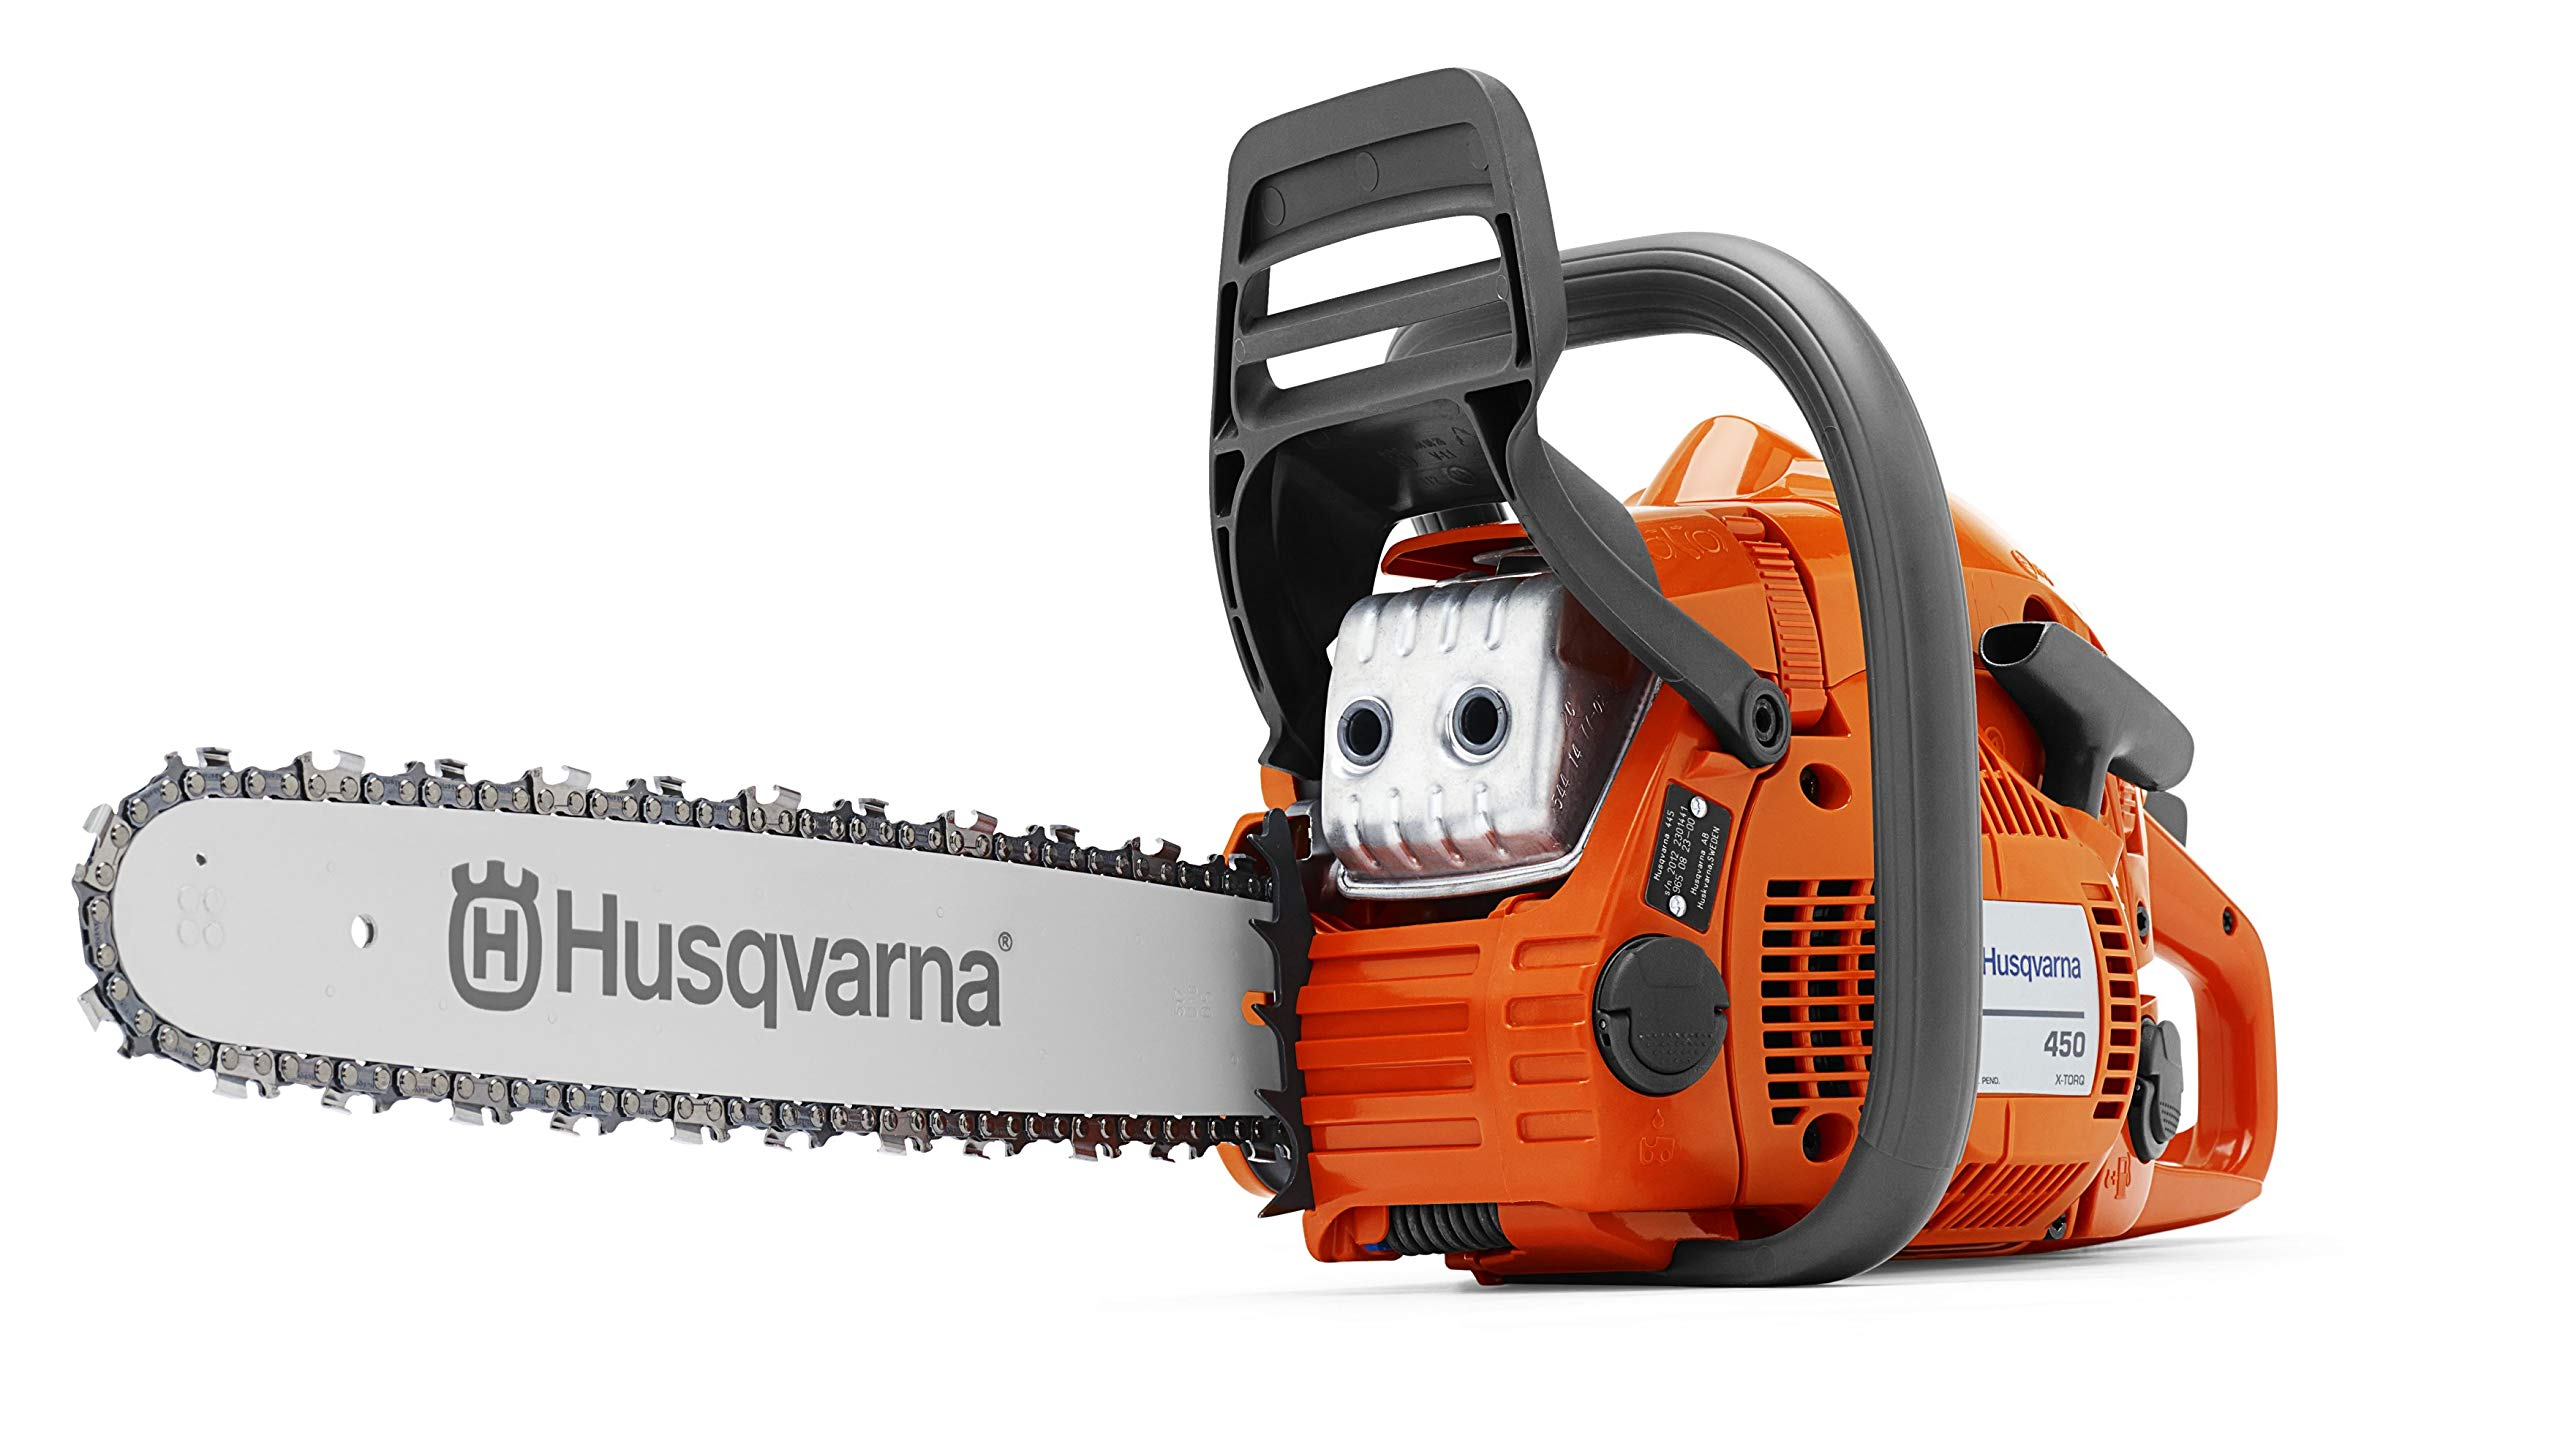 Husqvarna 450 Rancher 20 in. 50.2cc 2-Cycle Gas Chainsaw (Renewed)